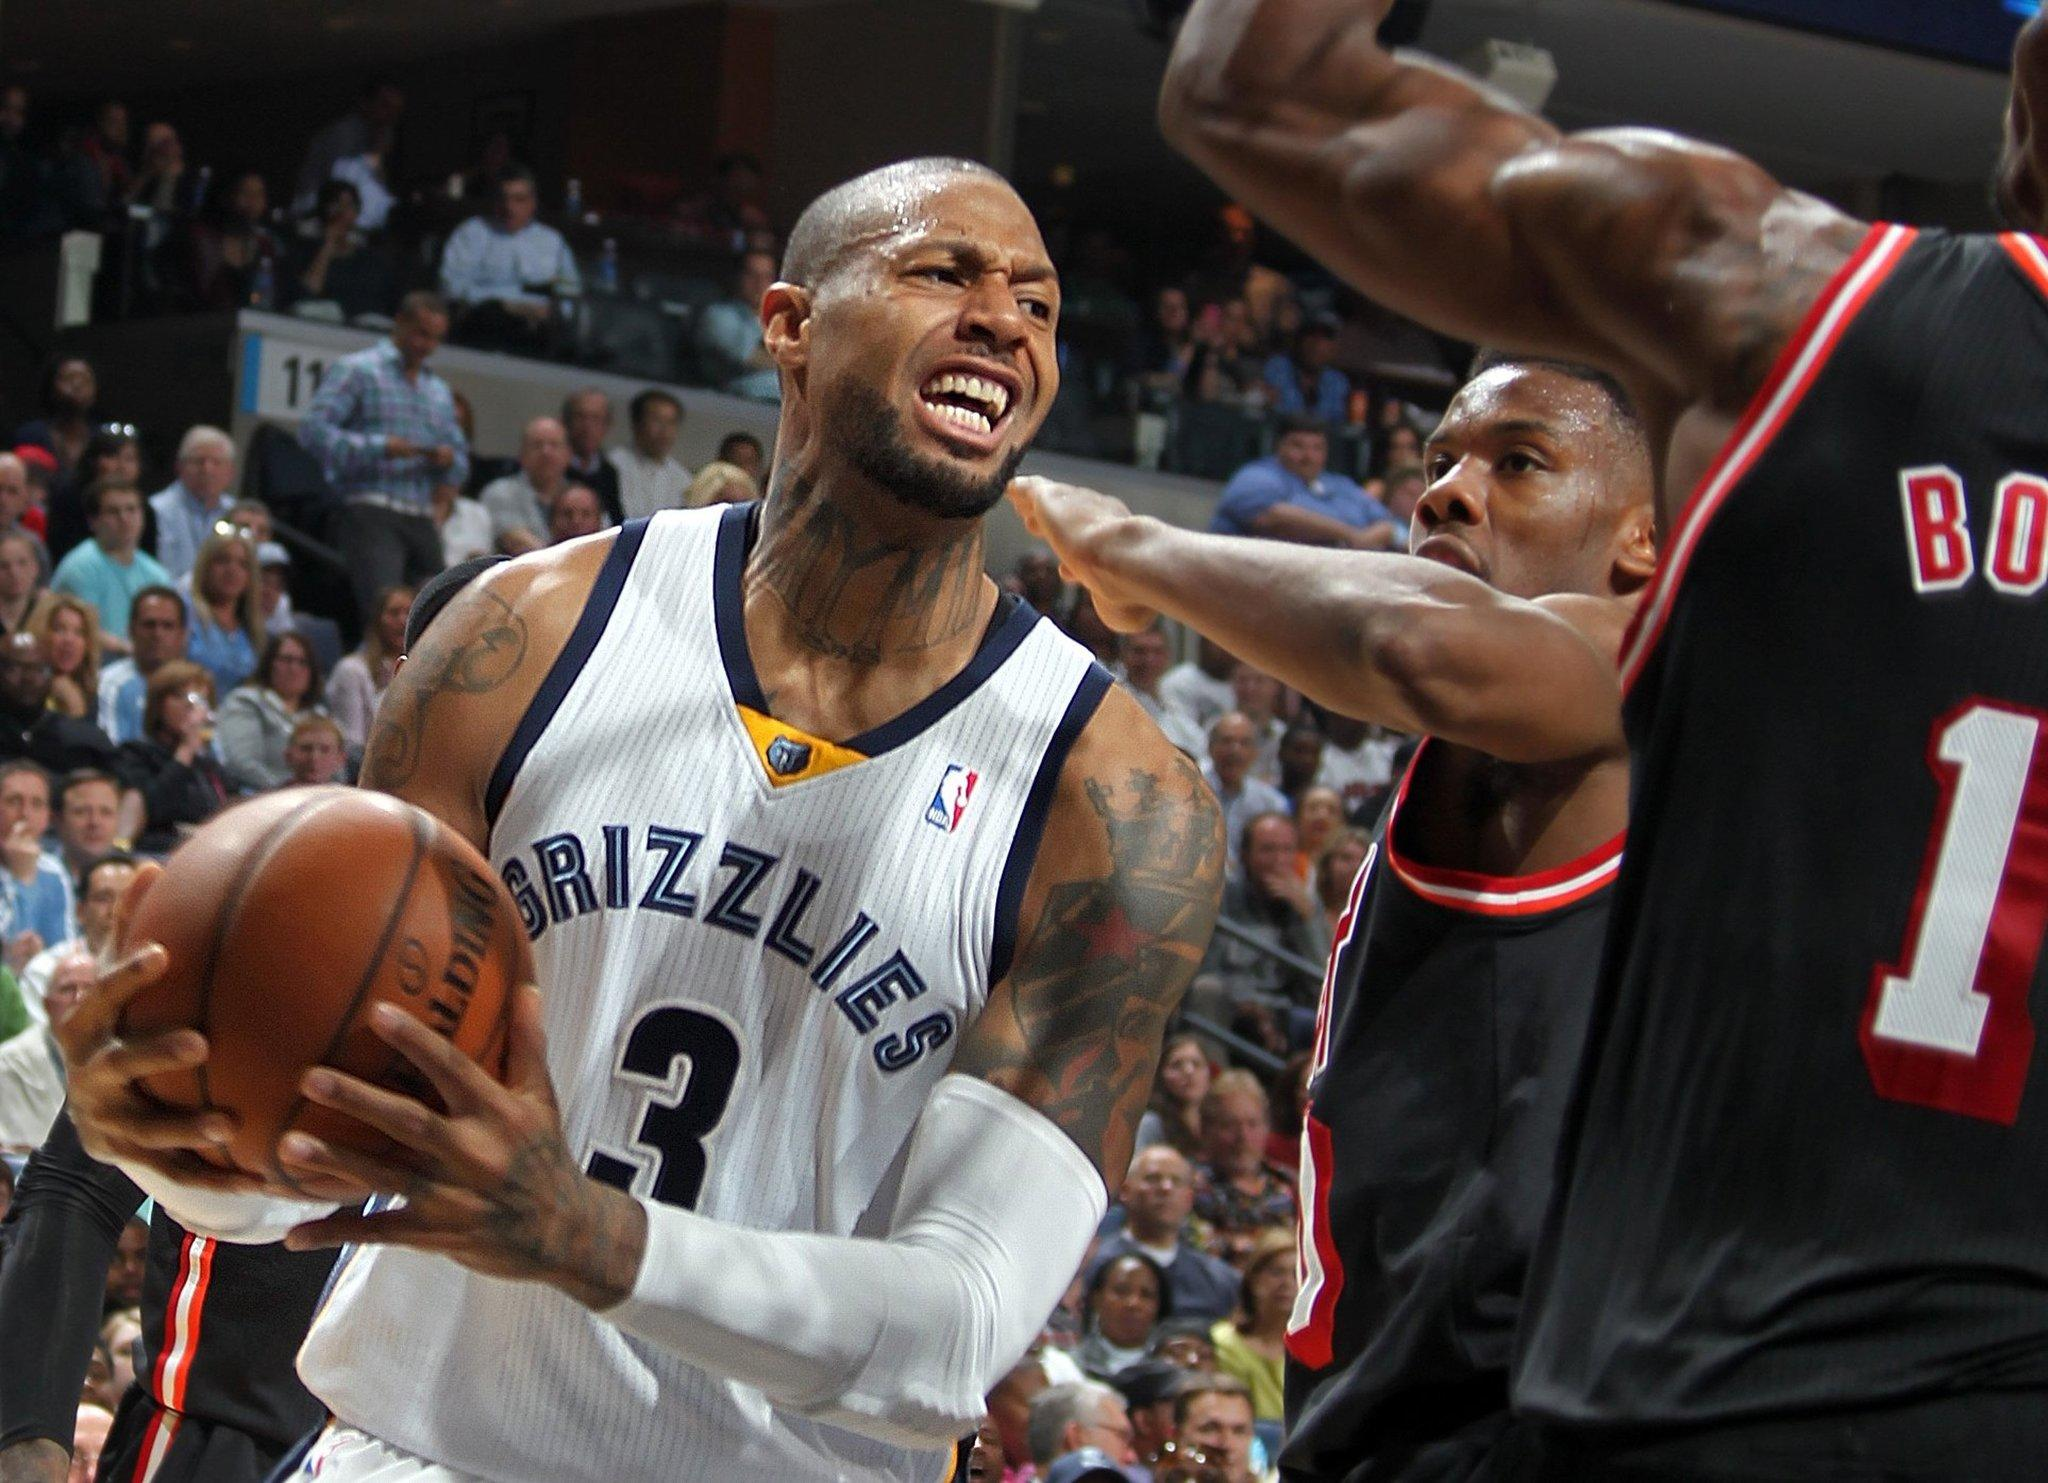 The Grizzlies' James Johnson (3) drives against the Heat in April.